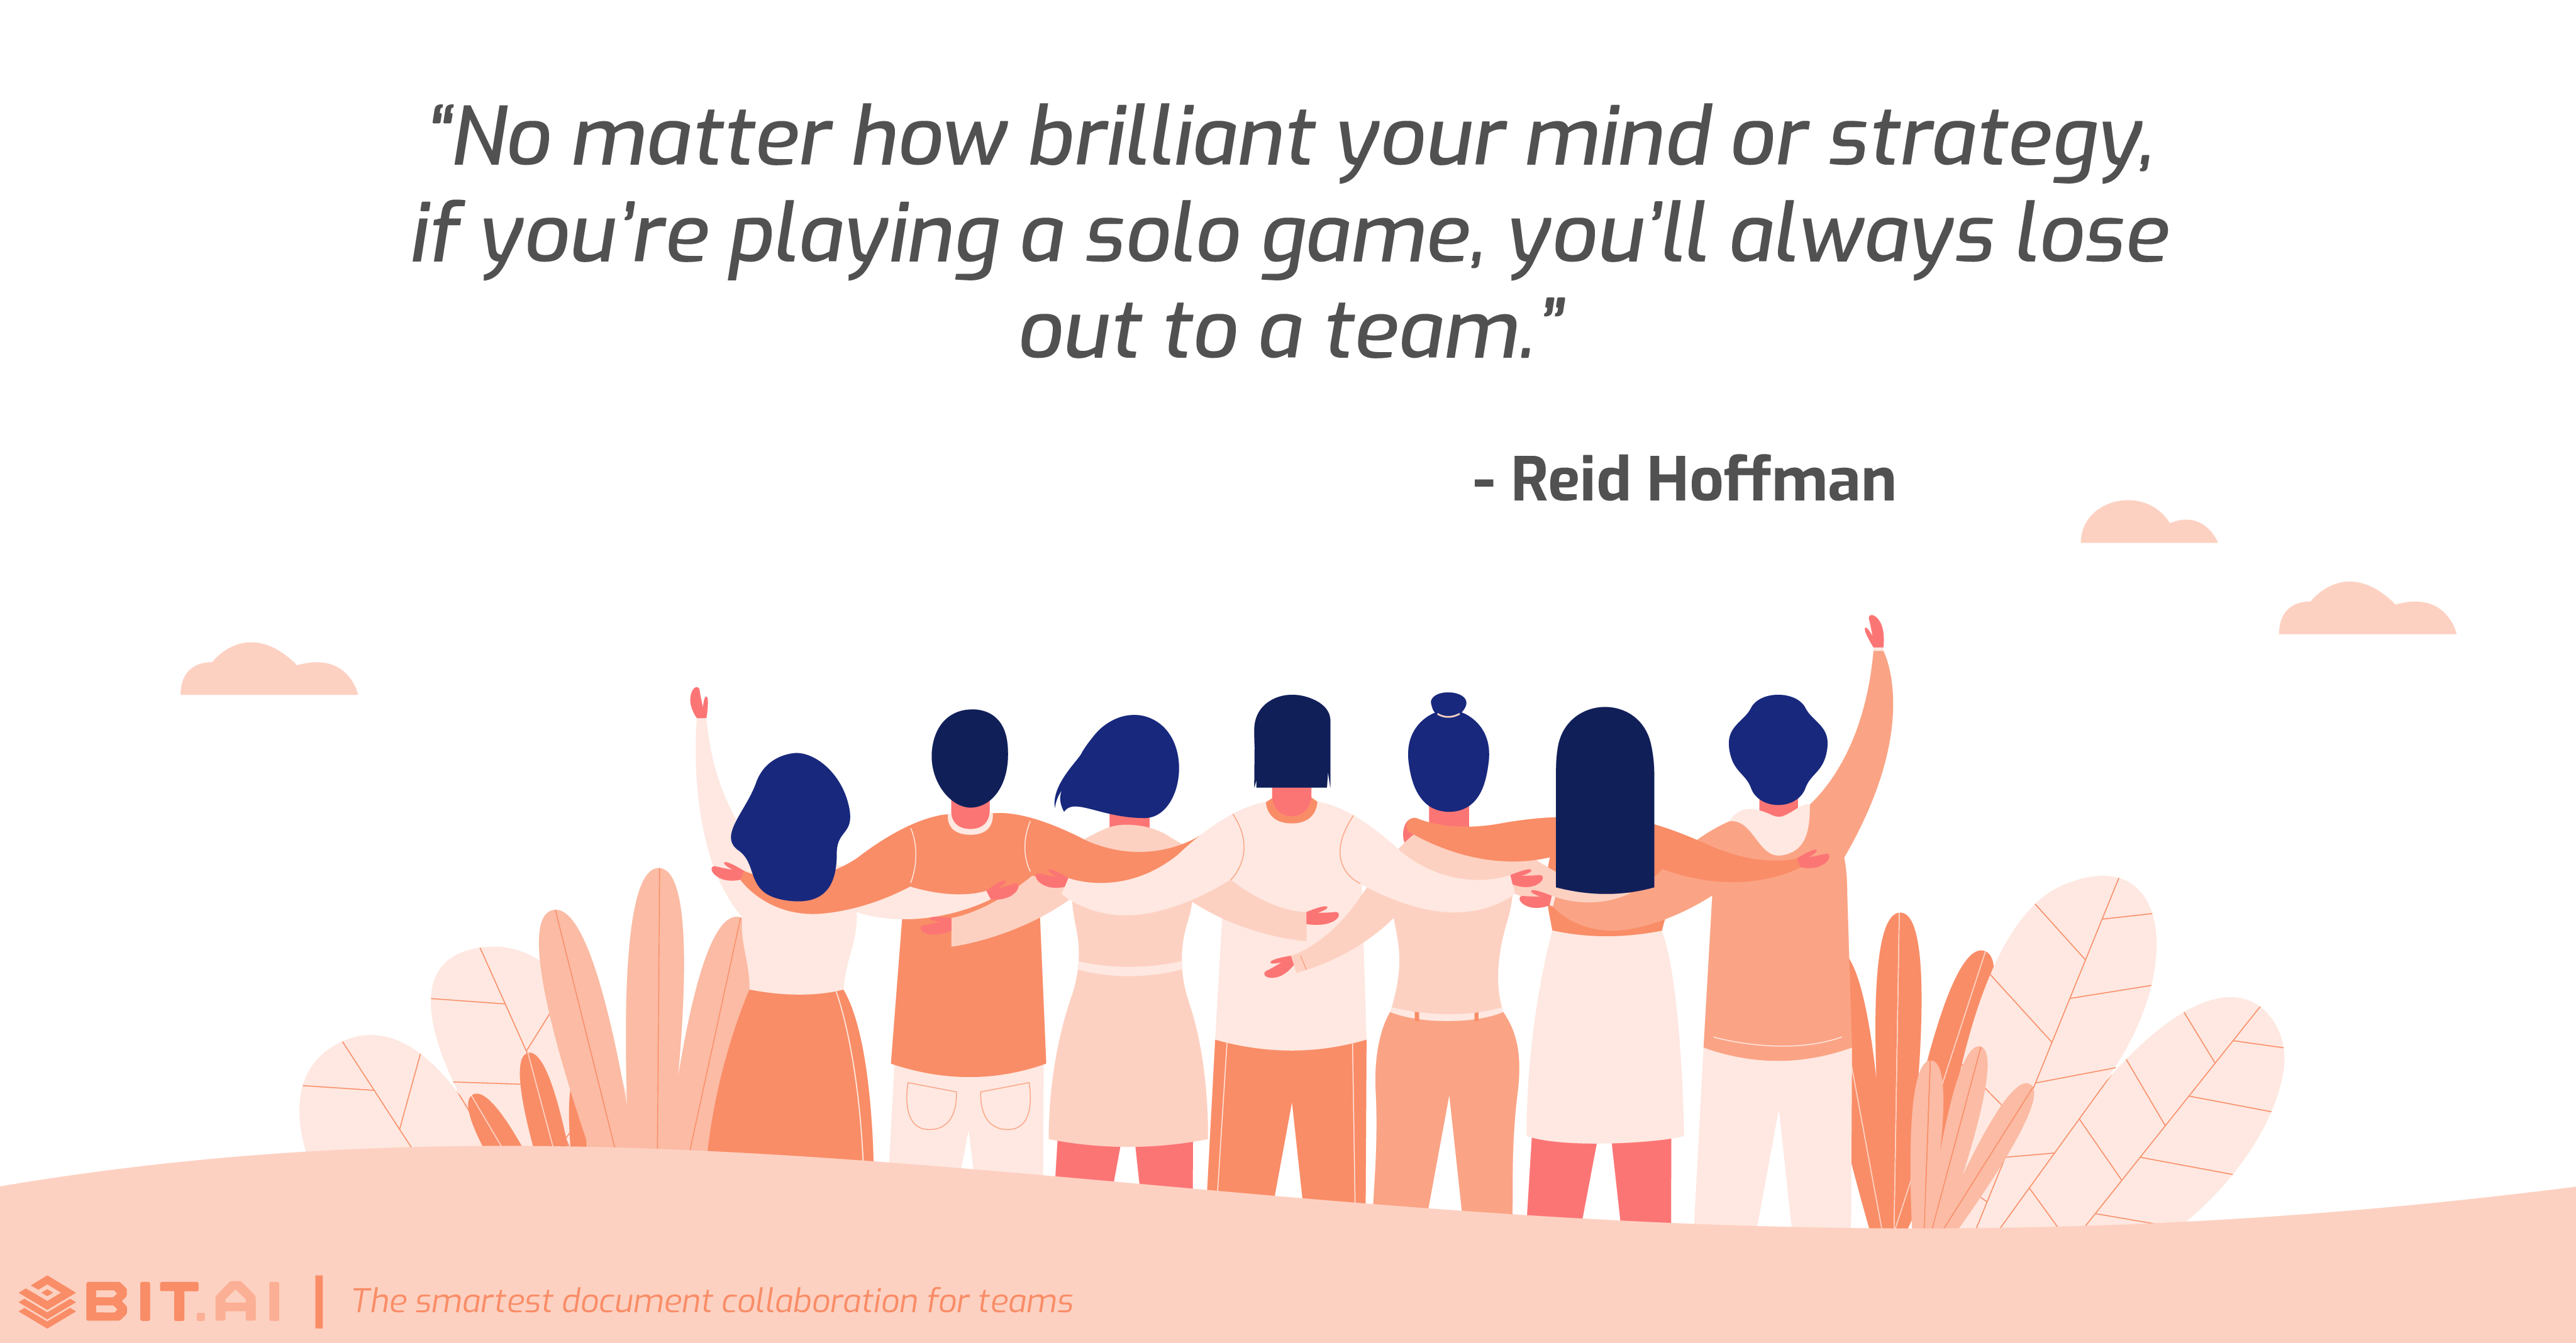 Teamwork collaboration quote by Reid Hoffman